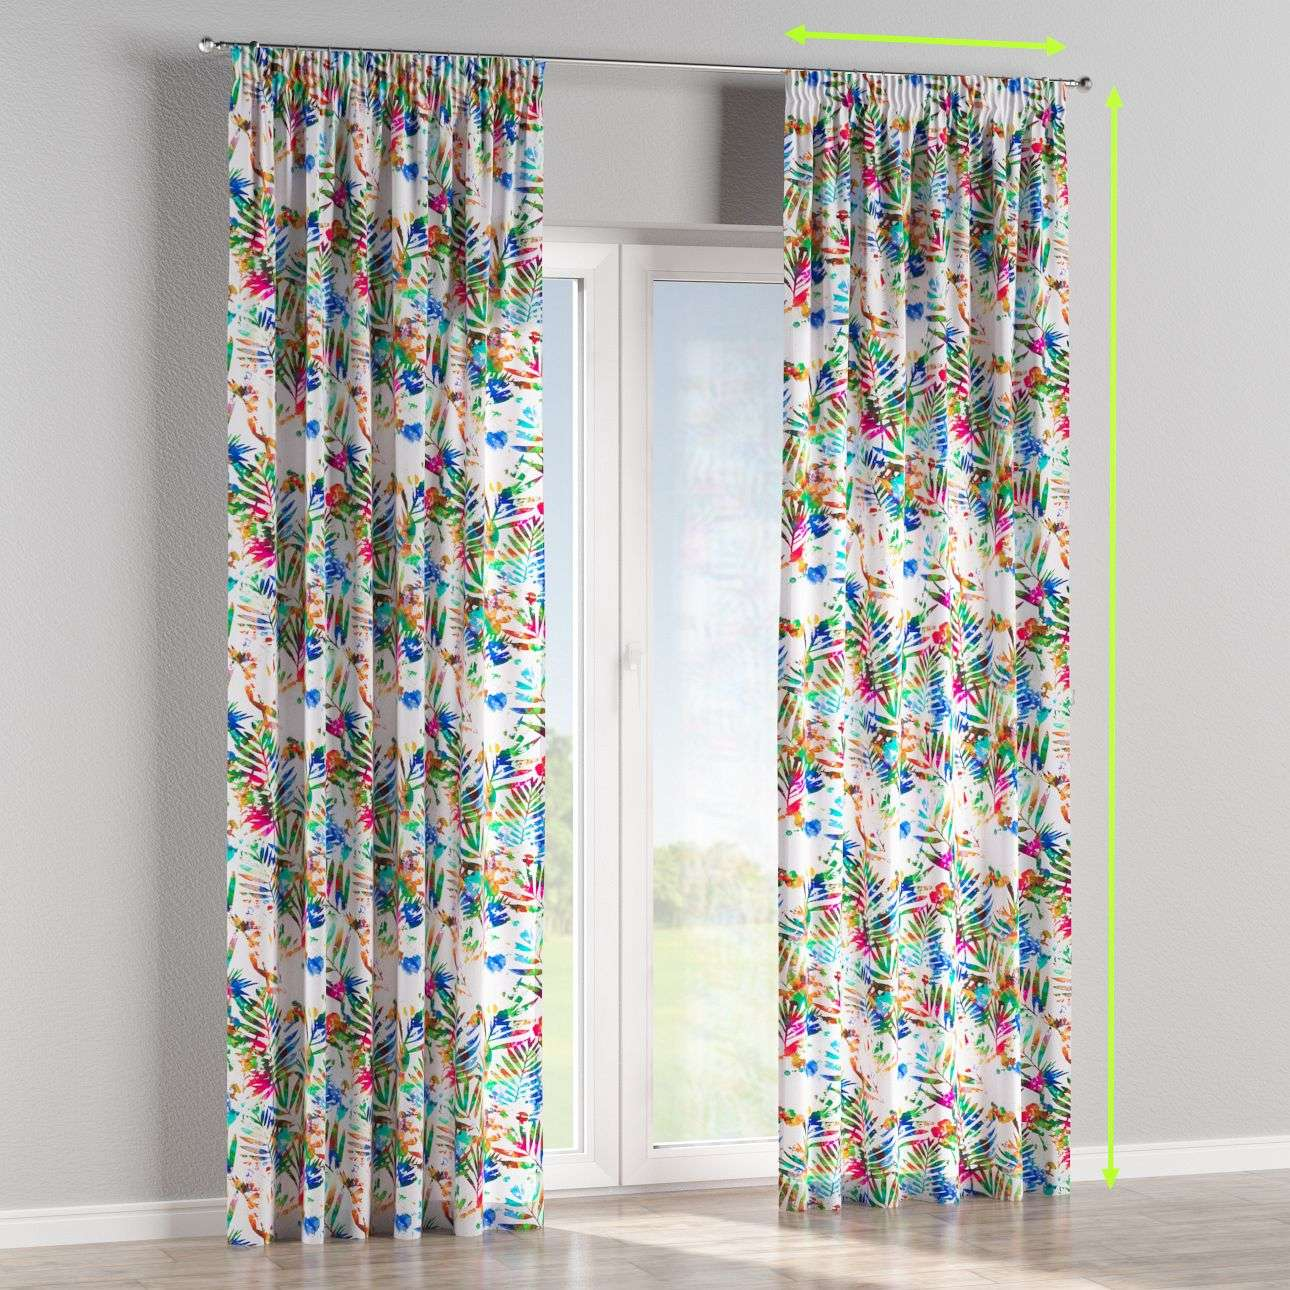 Pencil pleat lined curtains in collection New Art, fabric: 140-22